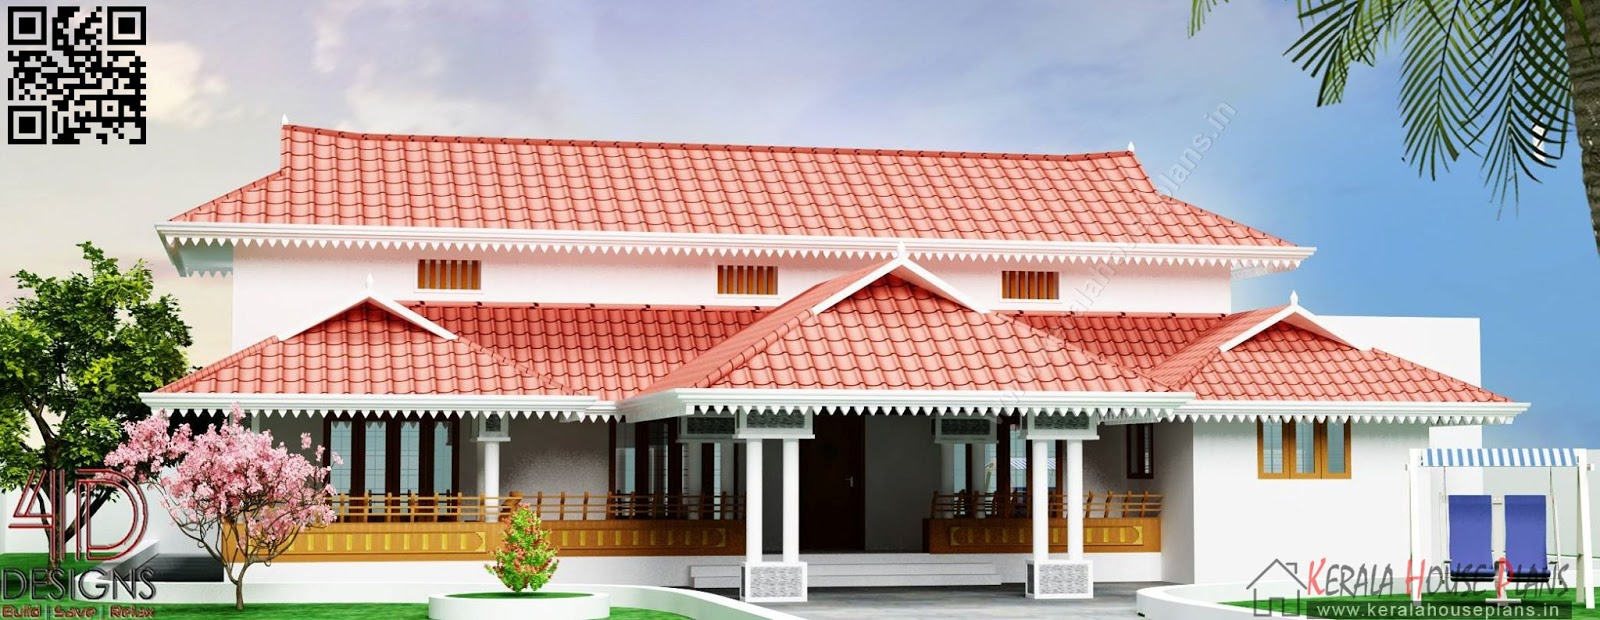 Kerala Traditional Home Design Elevation And Floor Details Kerala House Plans Designs Floor